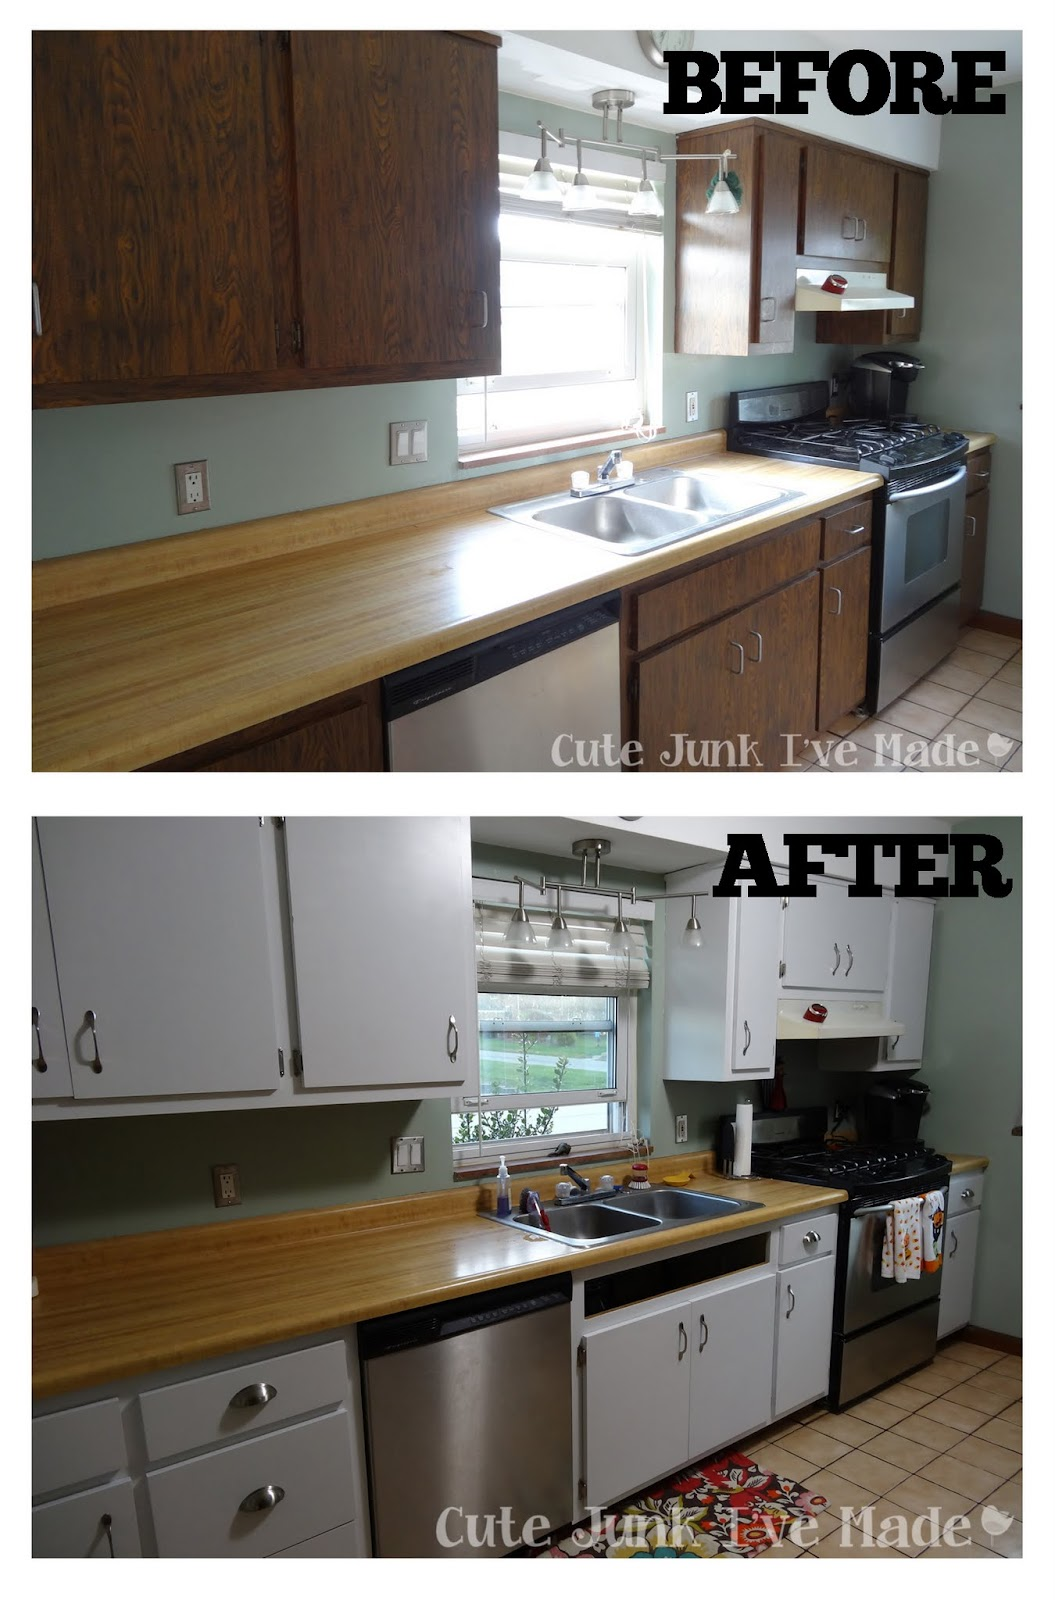 Repaint Kitchen Laminate Cupboards